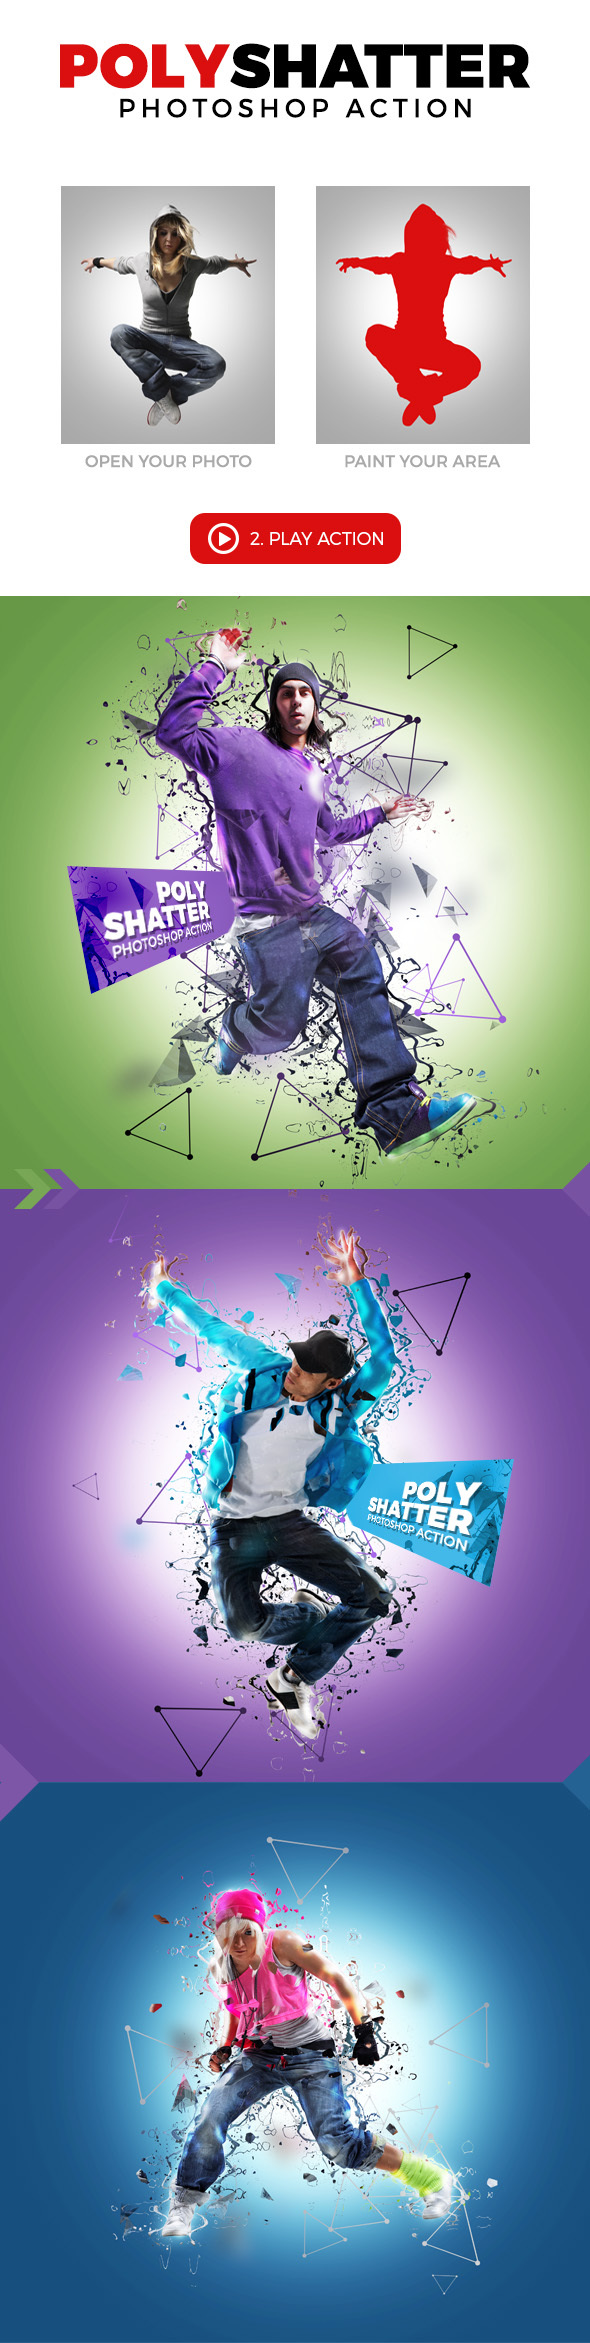 Poly Shatter Photoshop Action - Photo Effects Actions